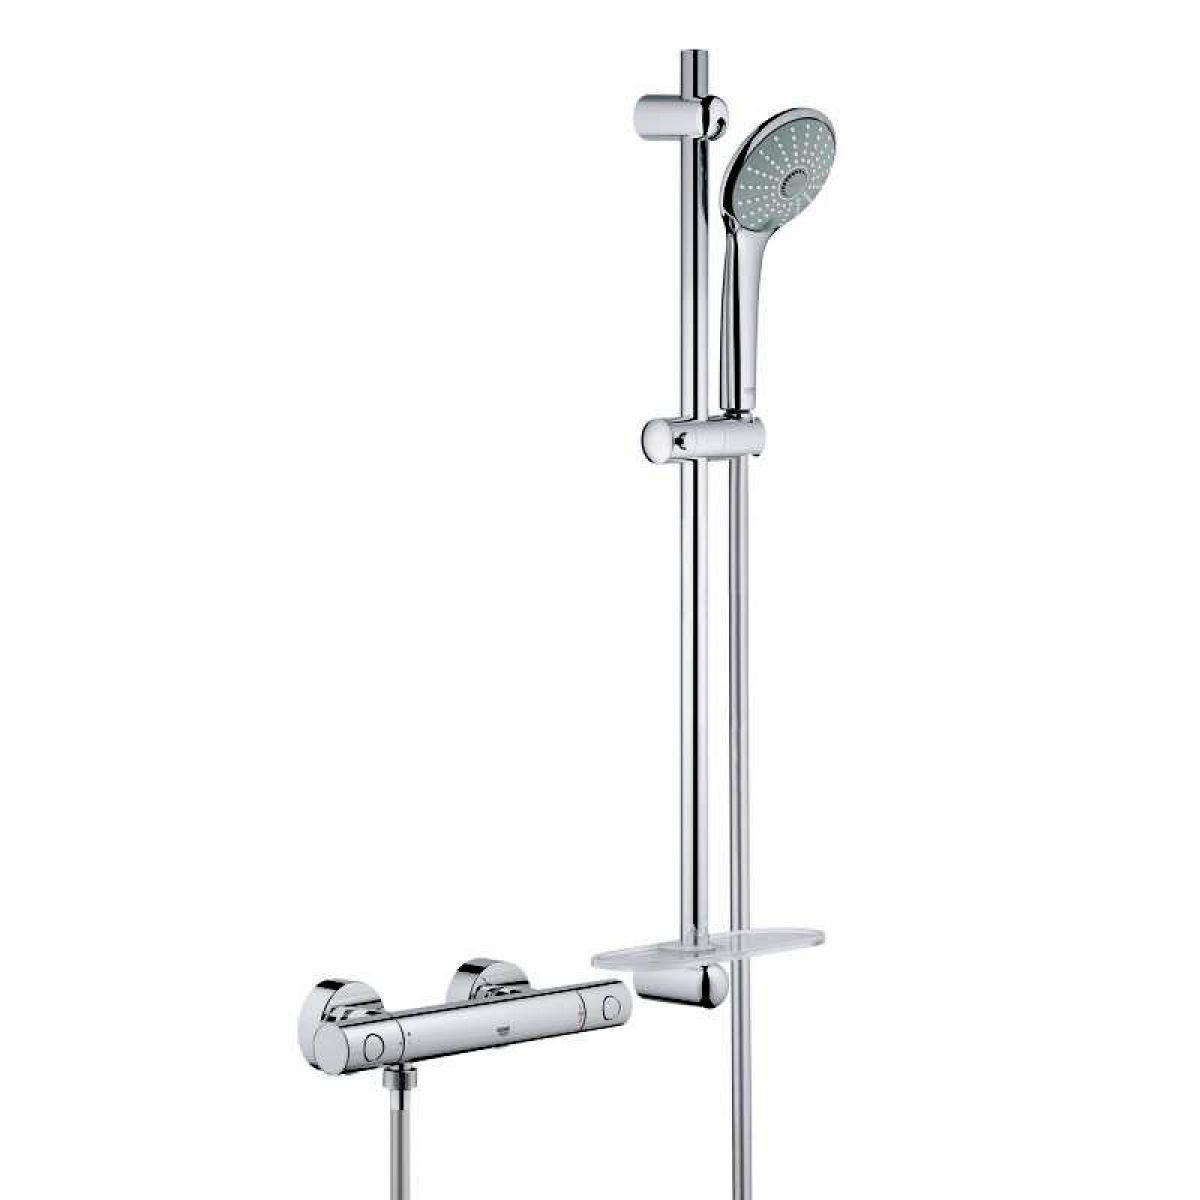 Turbo Grohtherm 1000 Cosmopolitan M Thermostatic shower mixer : UK Bathrooms GL85